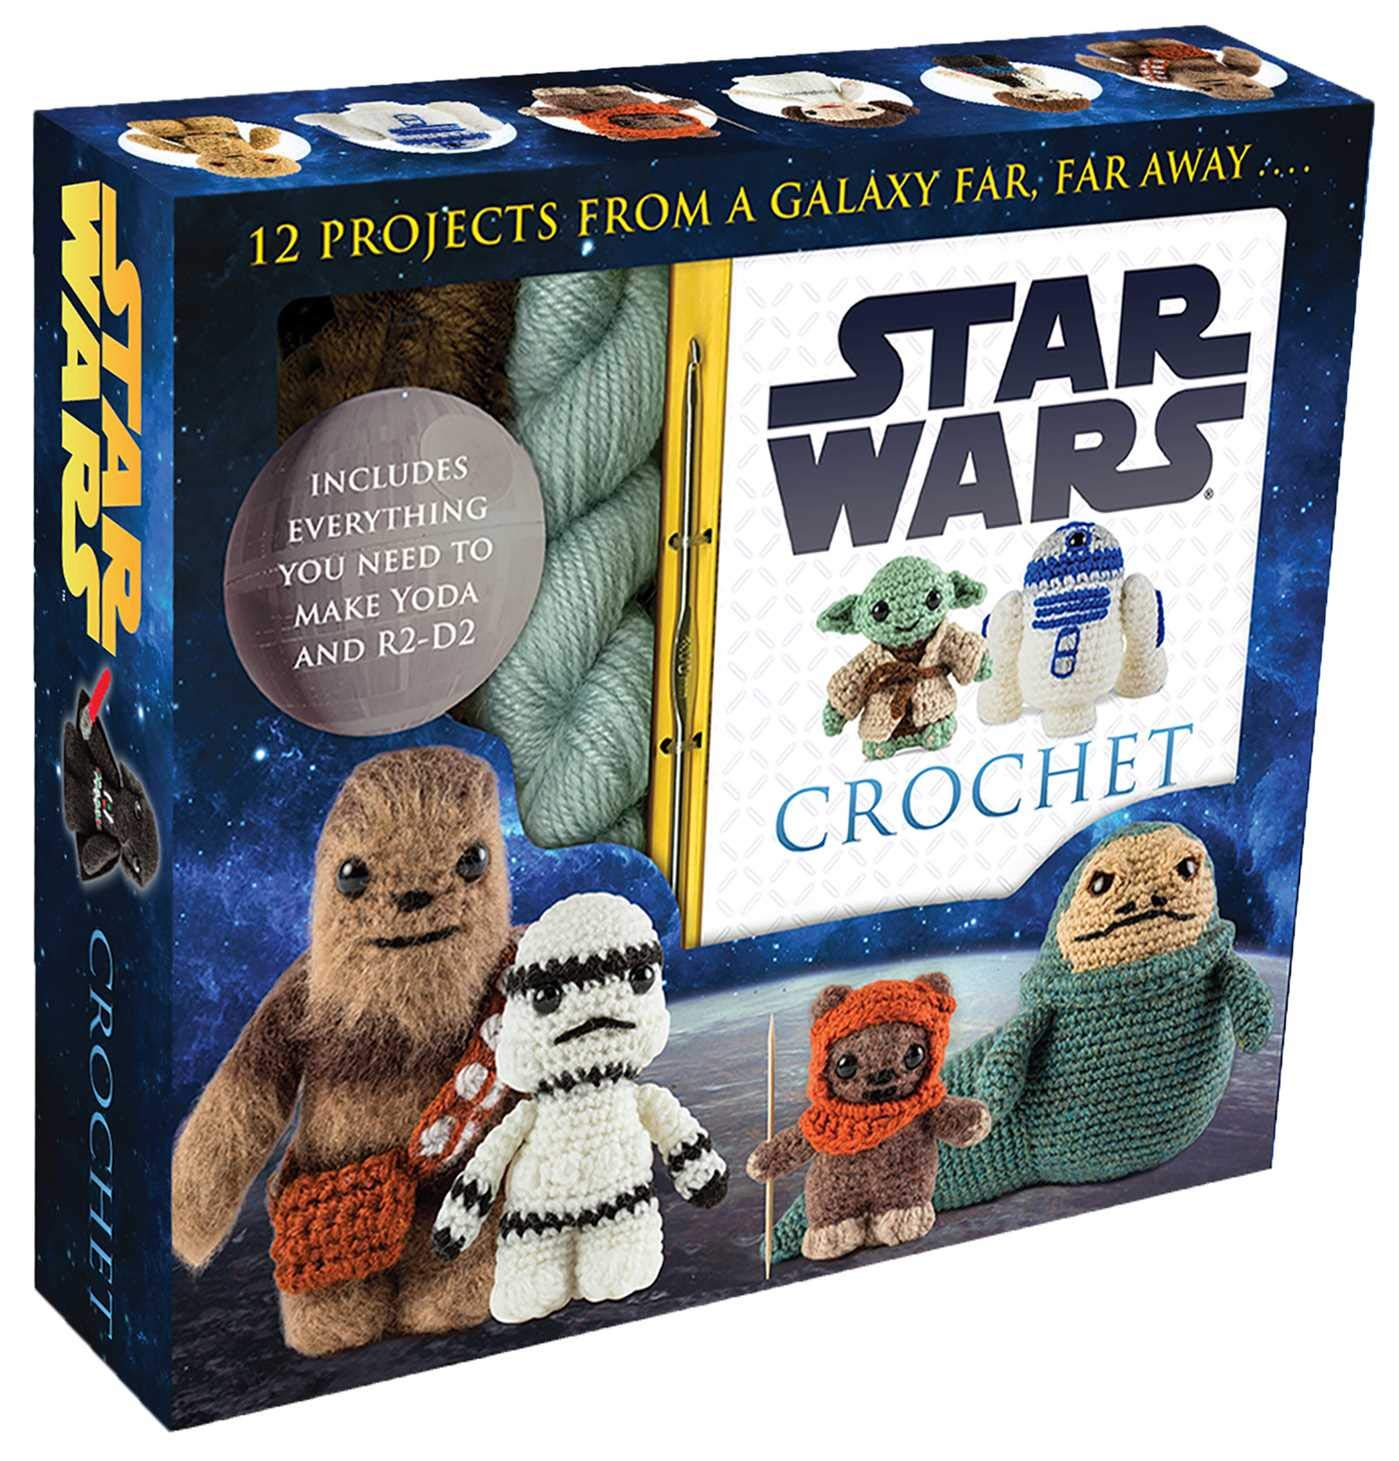 Star Wars: Crochet (2021)